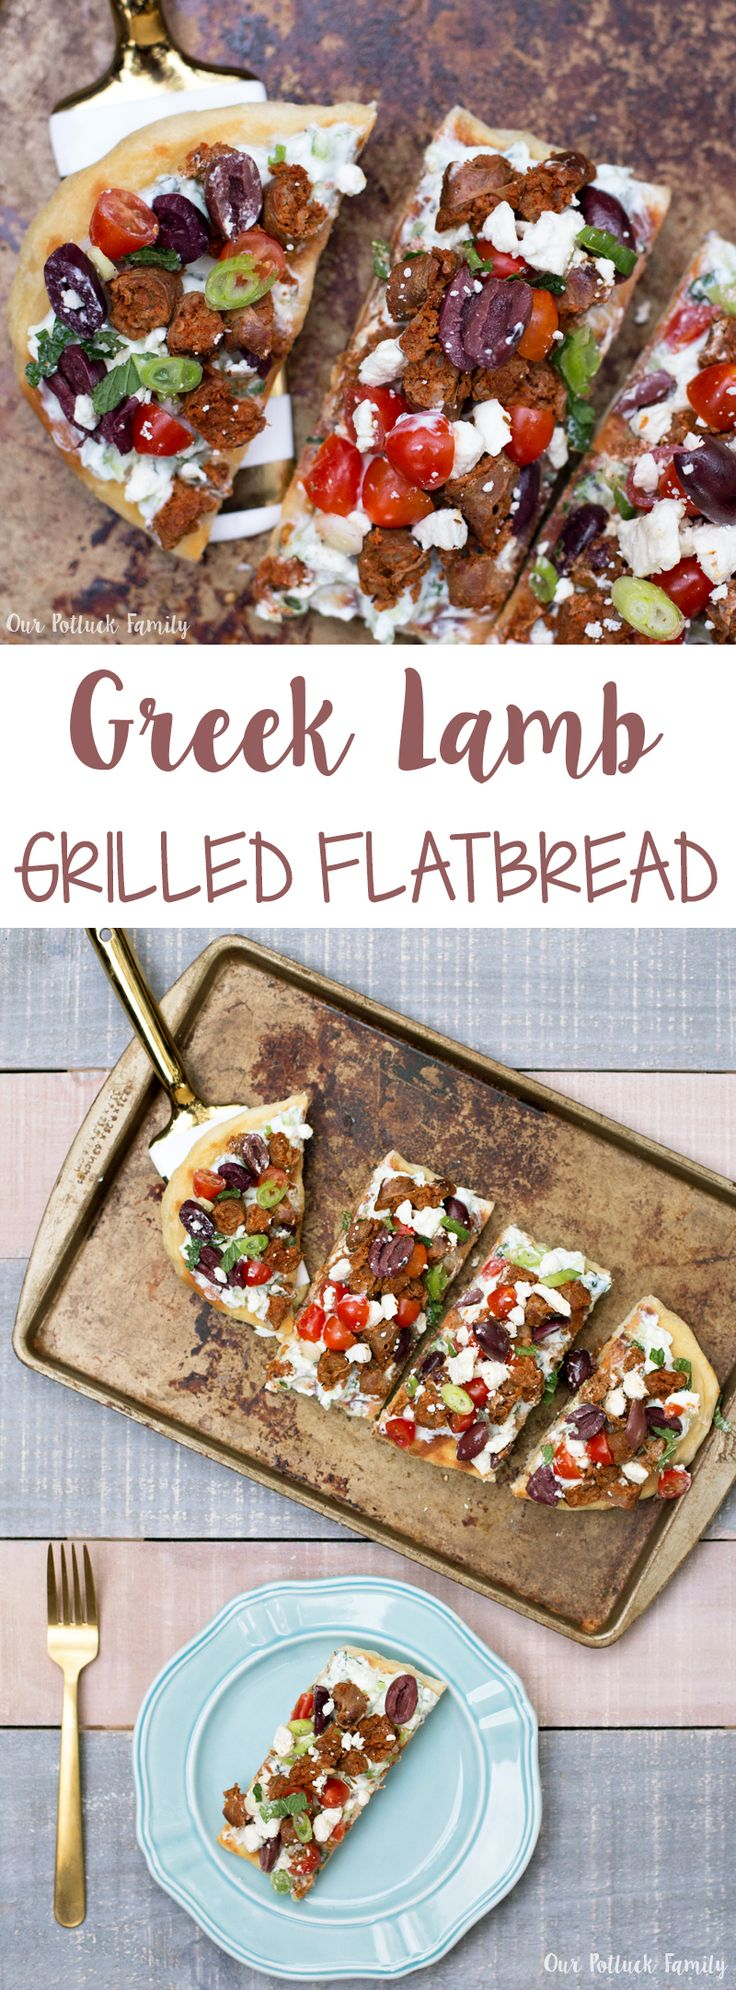 Greek Lamb Grilled Flatbread #MyNutrishPeak #ad